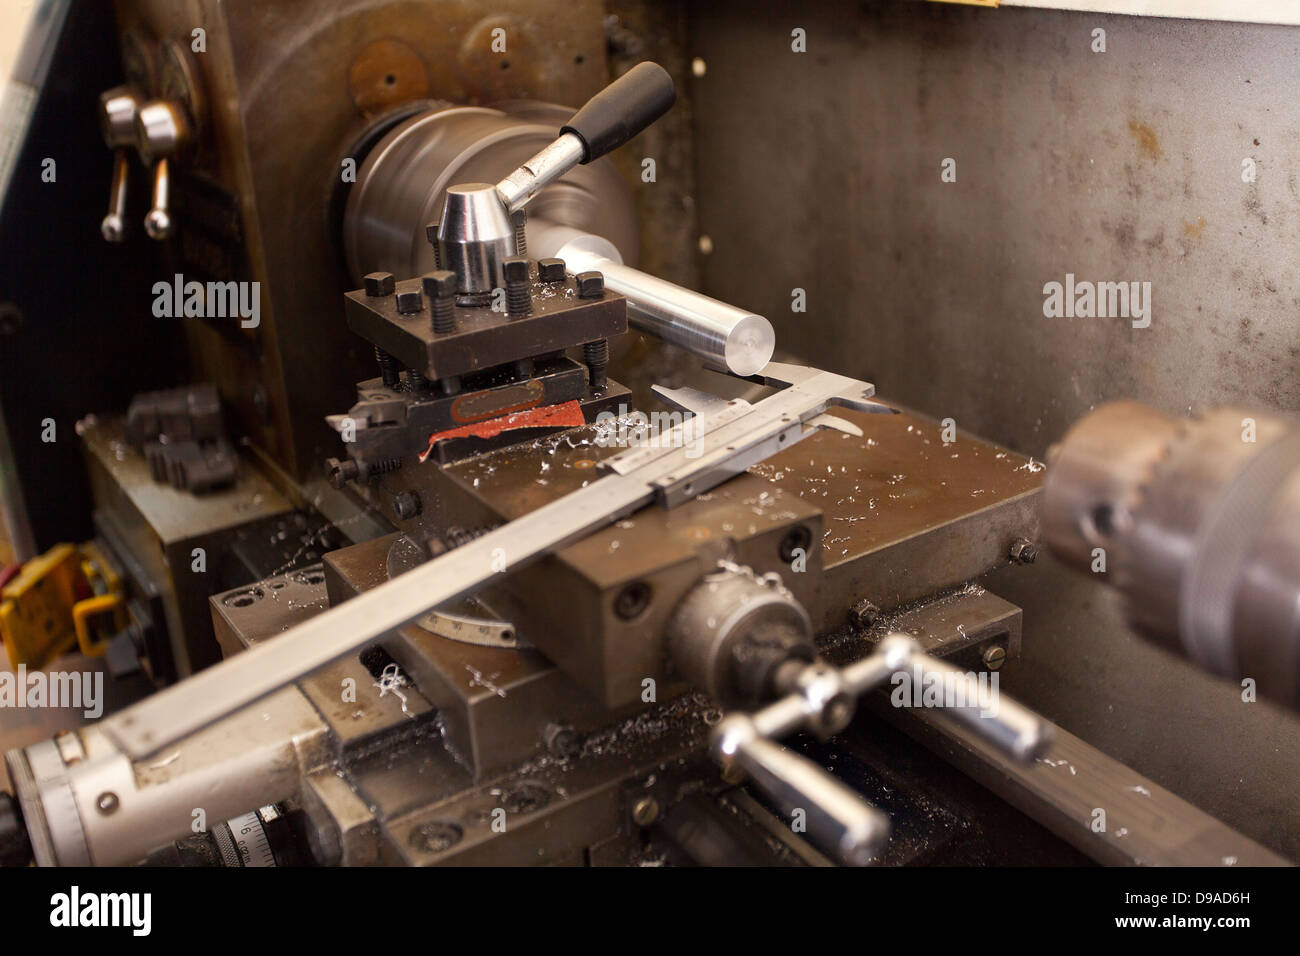 industrial lathe machine and vernier - Stock Image